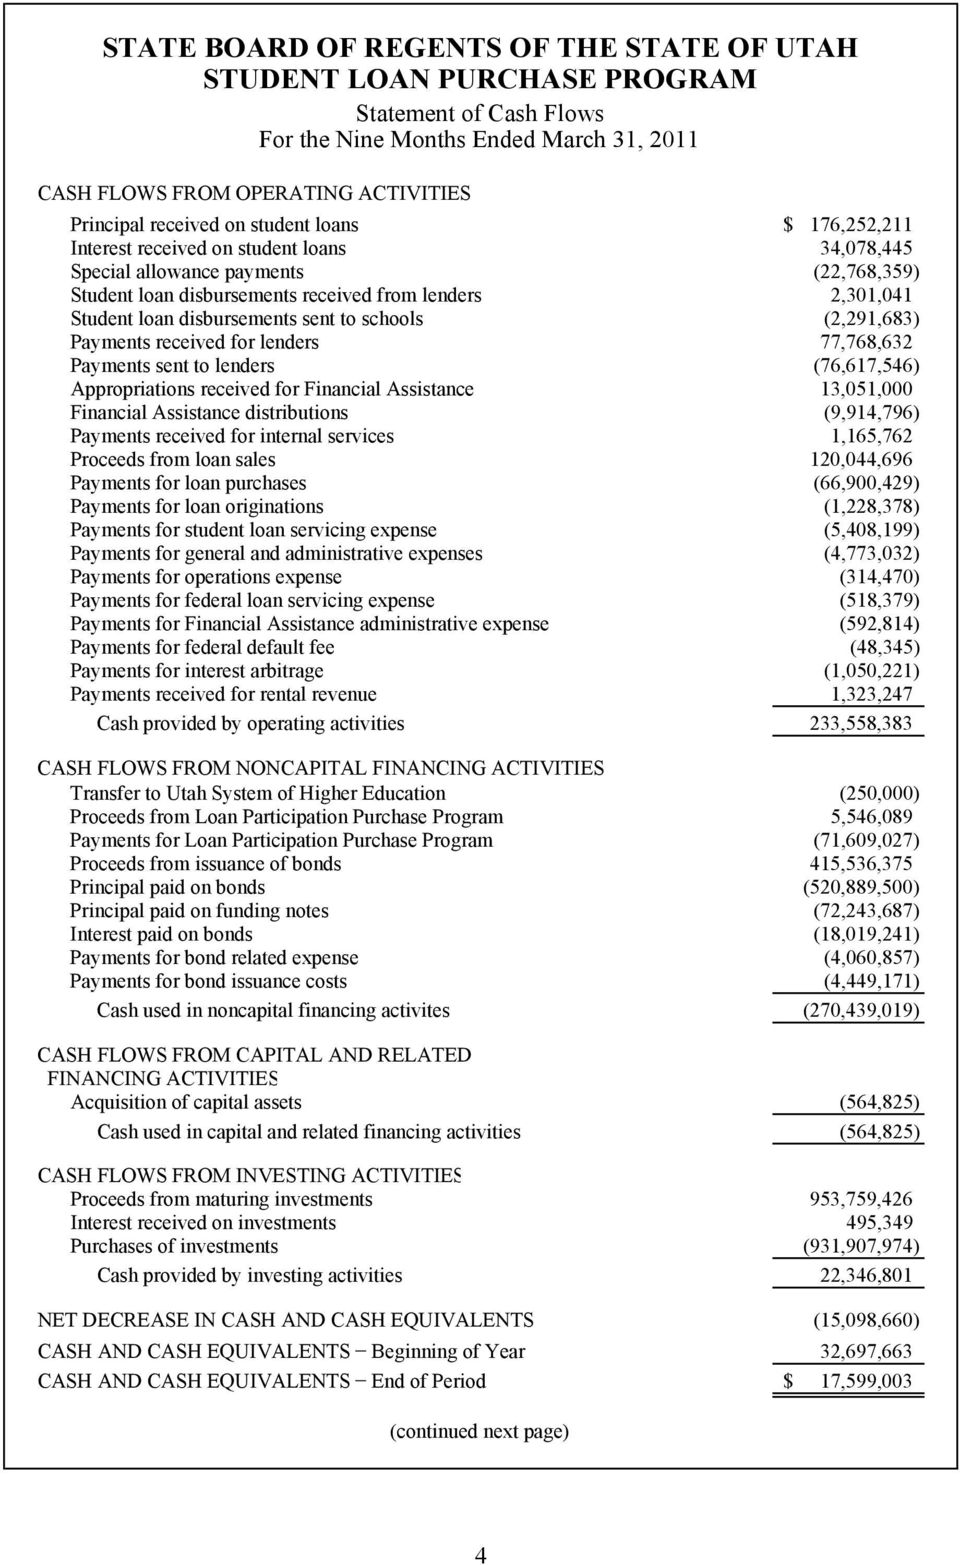 Appropriations received for Financial Assistance 13,051,000 Financial Assistance distributions (9,914,796) Payments received for internal services 1,165,762 Proceeds from loan sales 120,044,696